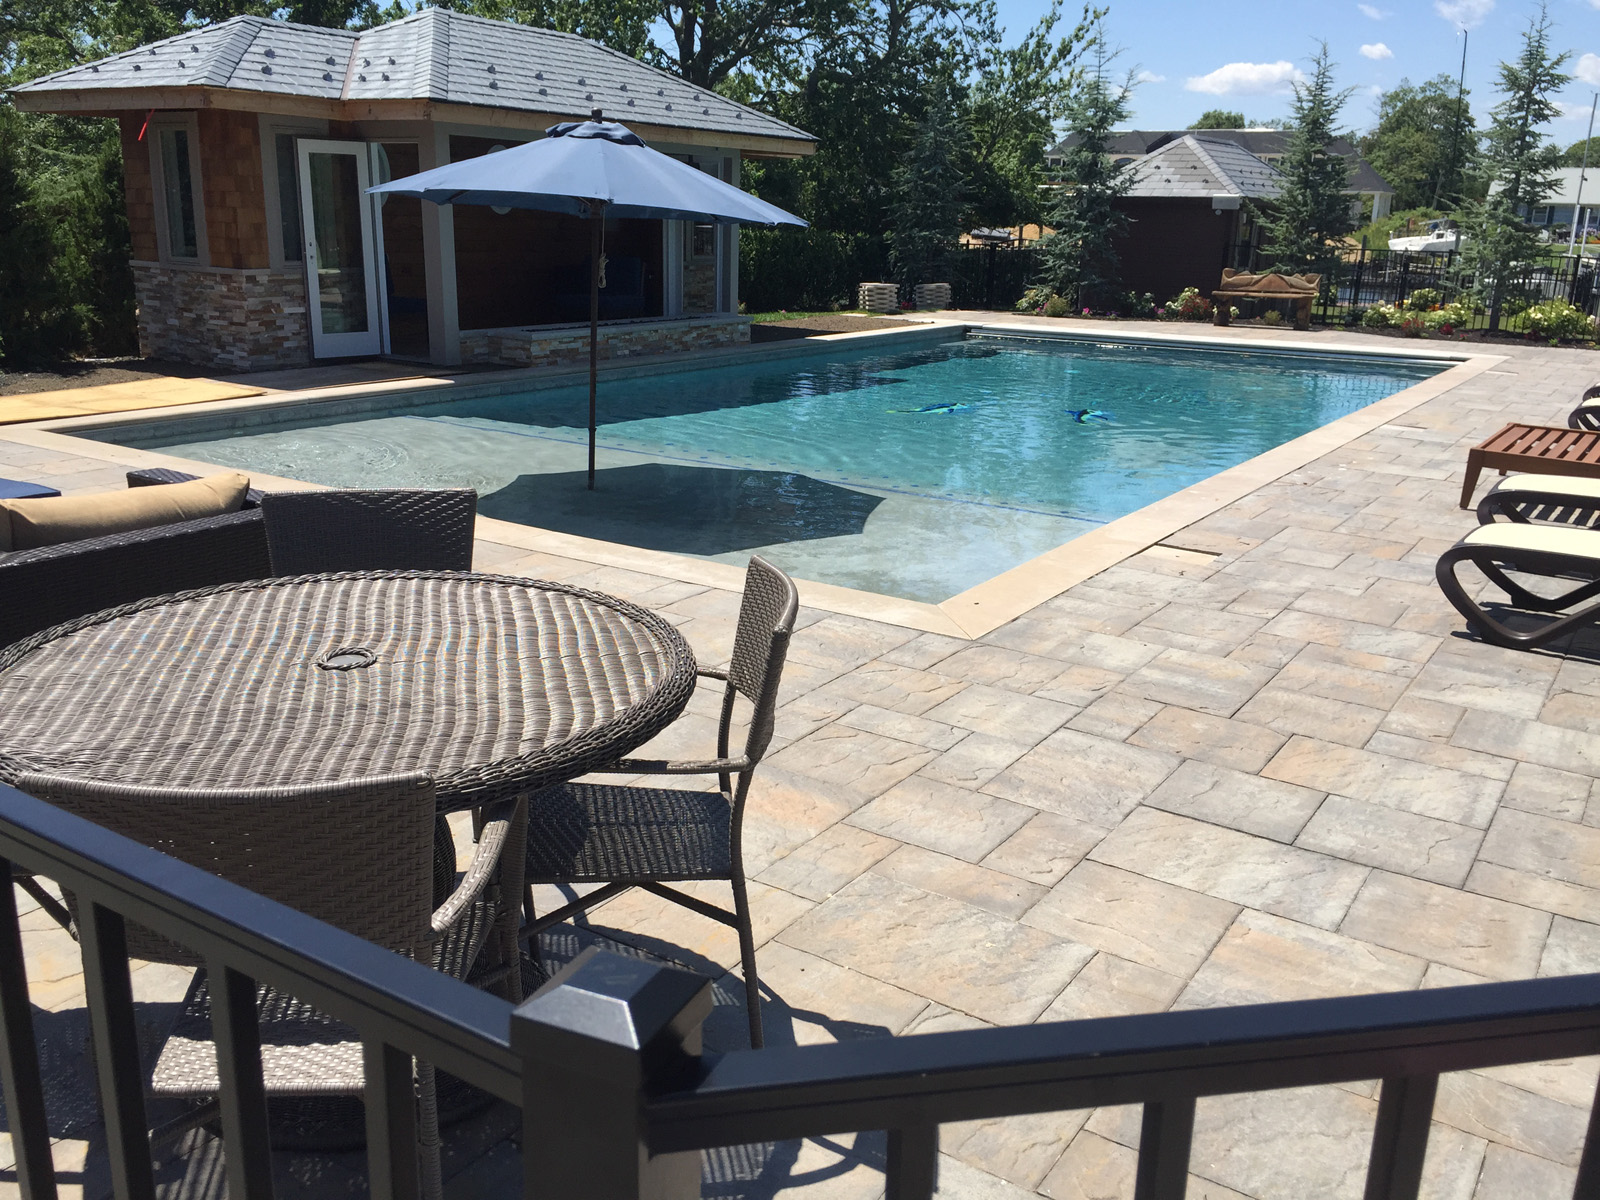 Professional pool area unilock paver design company in Long Island, NY